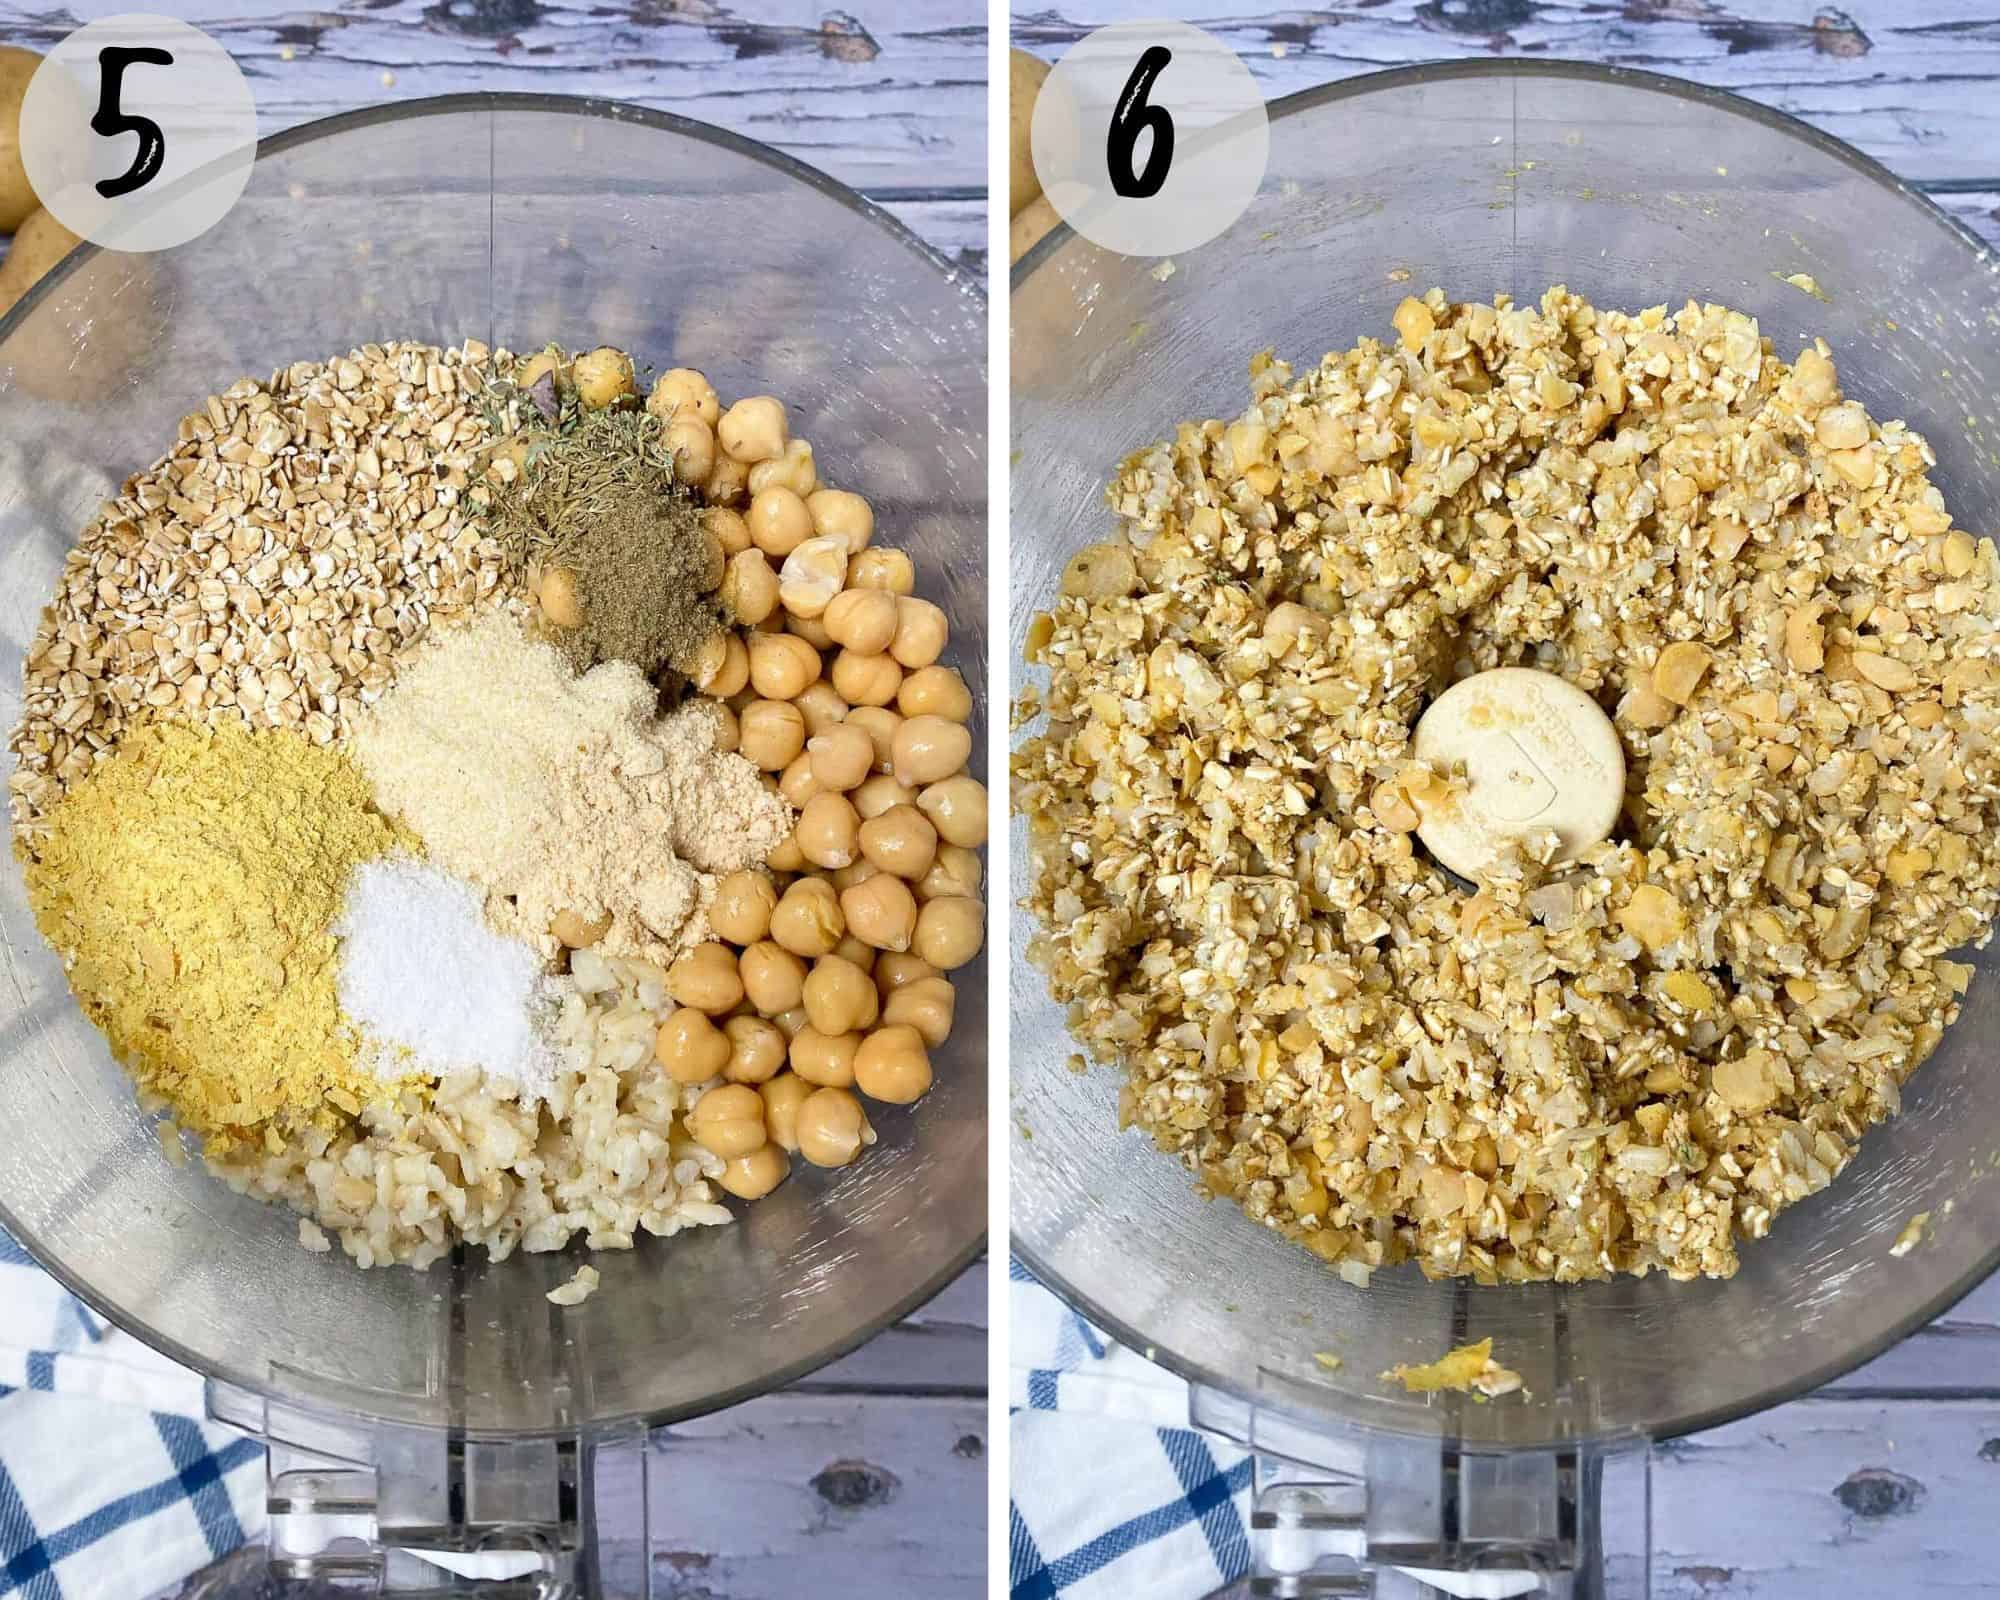 food processor with chickpeas, rice, oats and seasoning